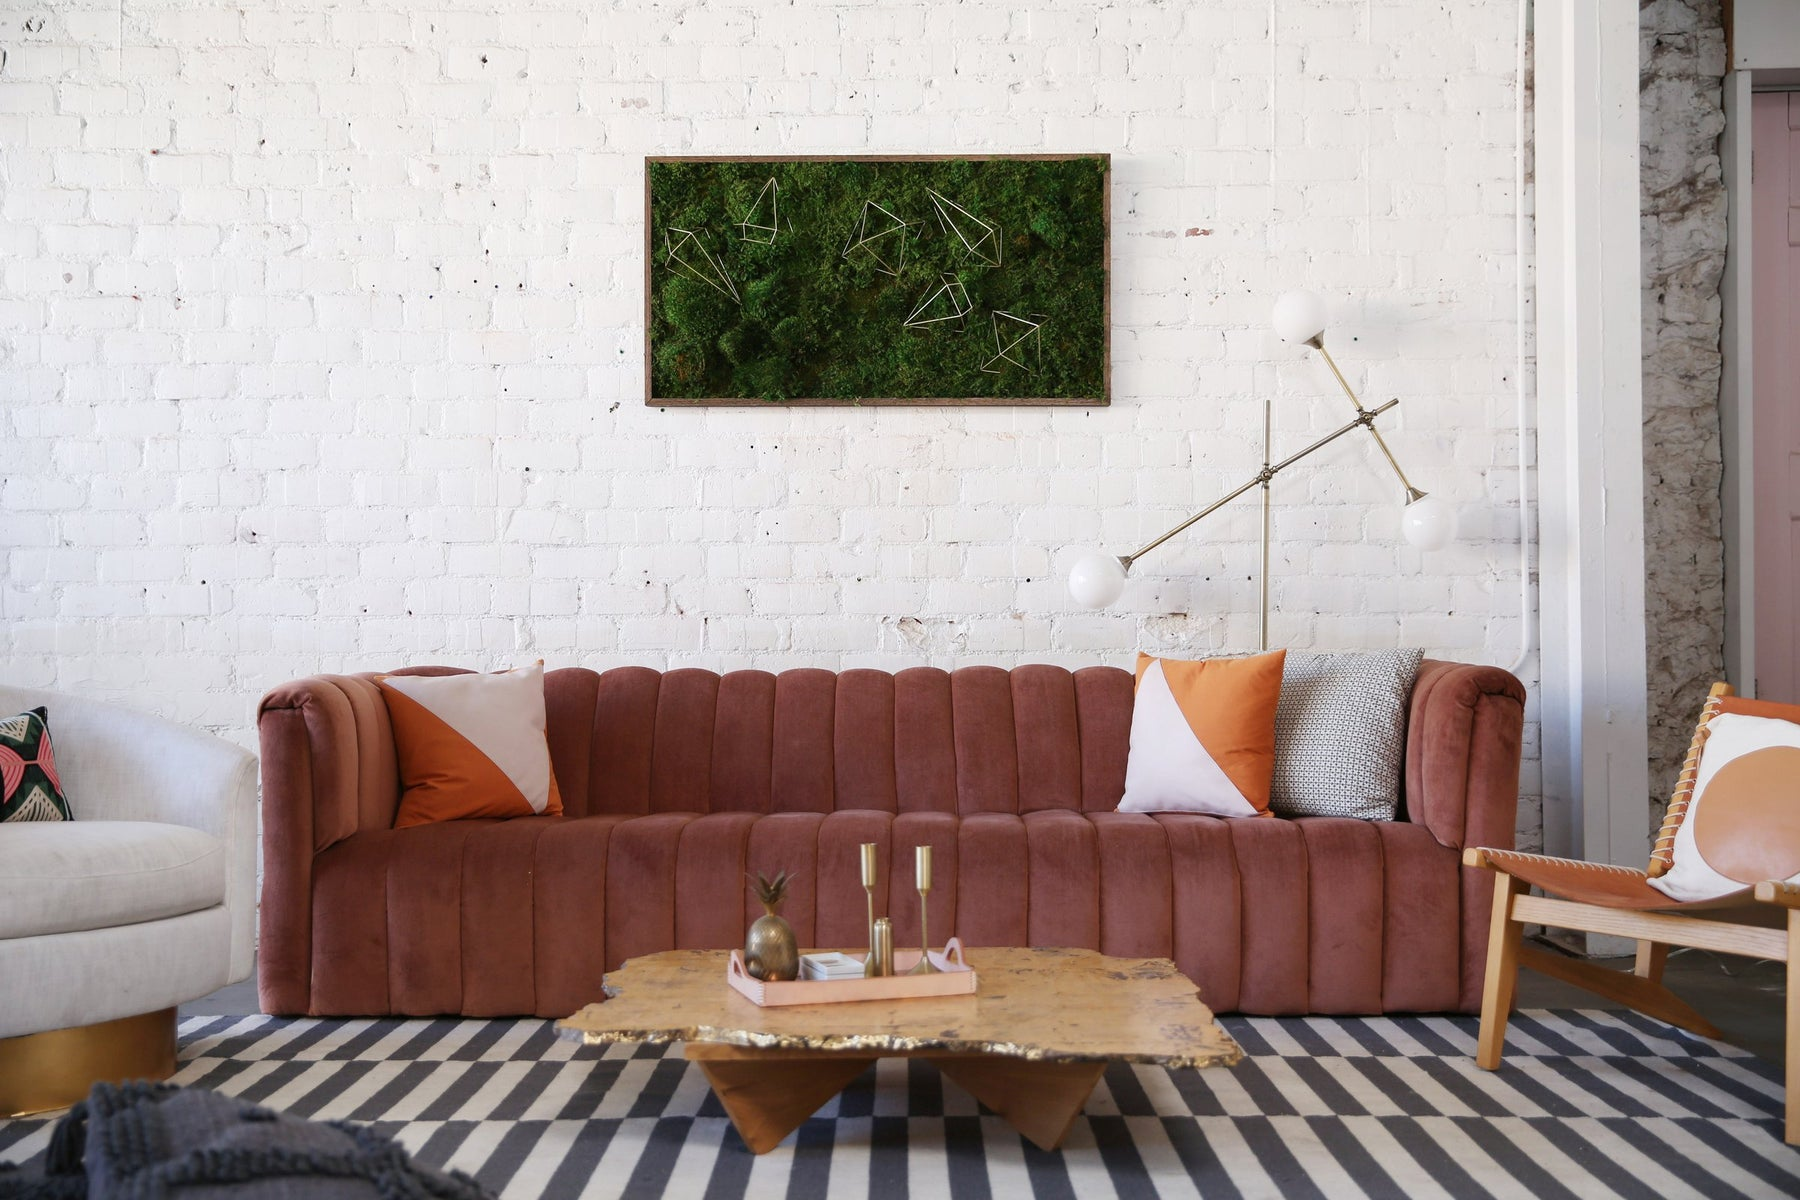 Another of kelley's pieces hung above a pink couch on a white brick wall